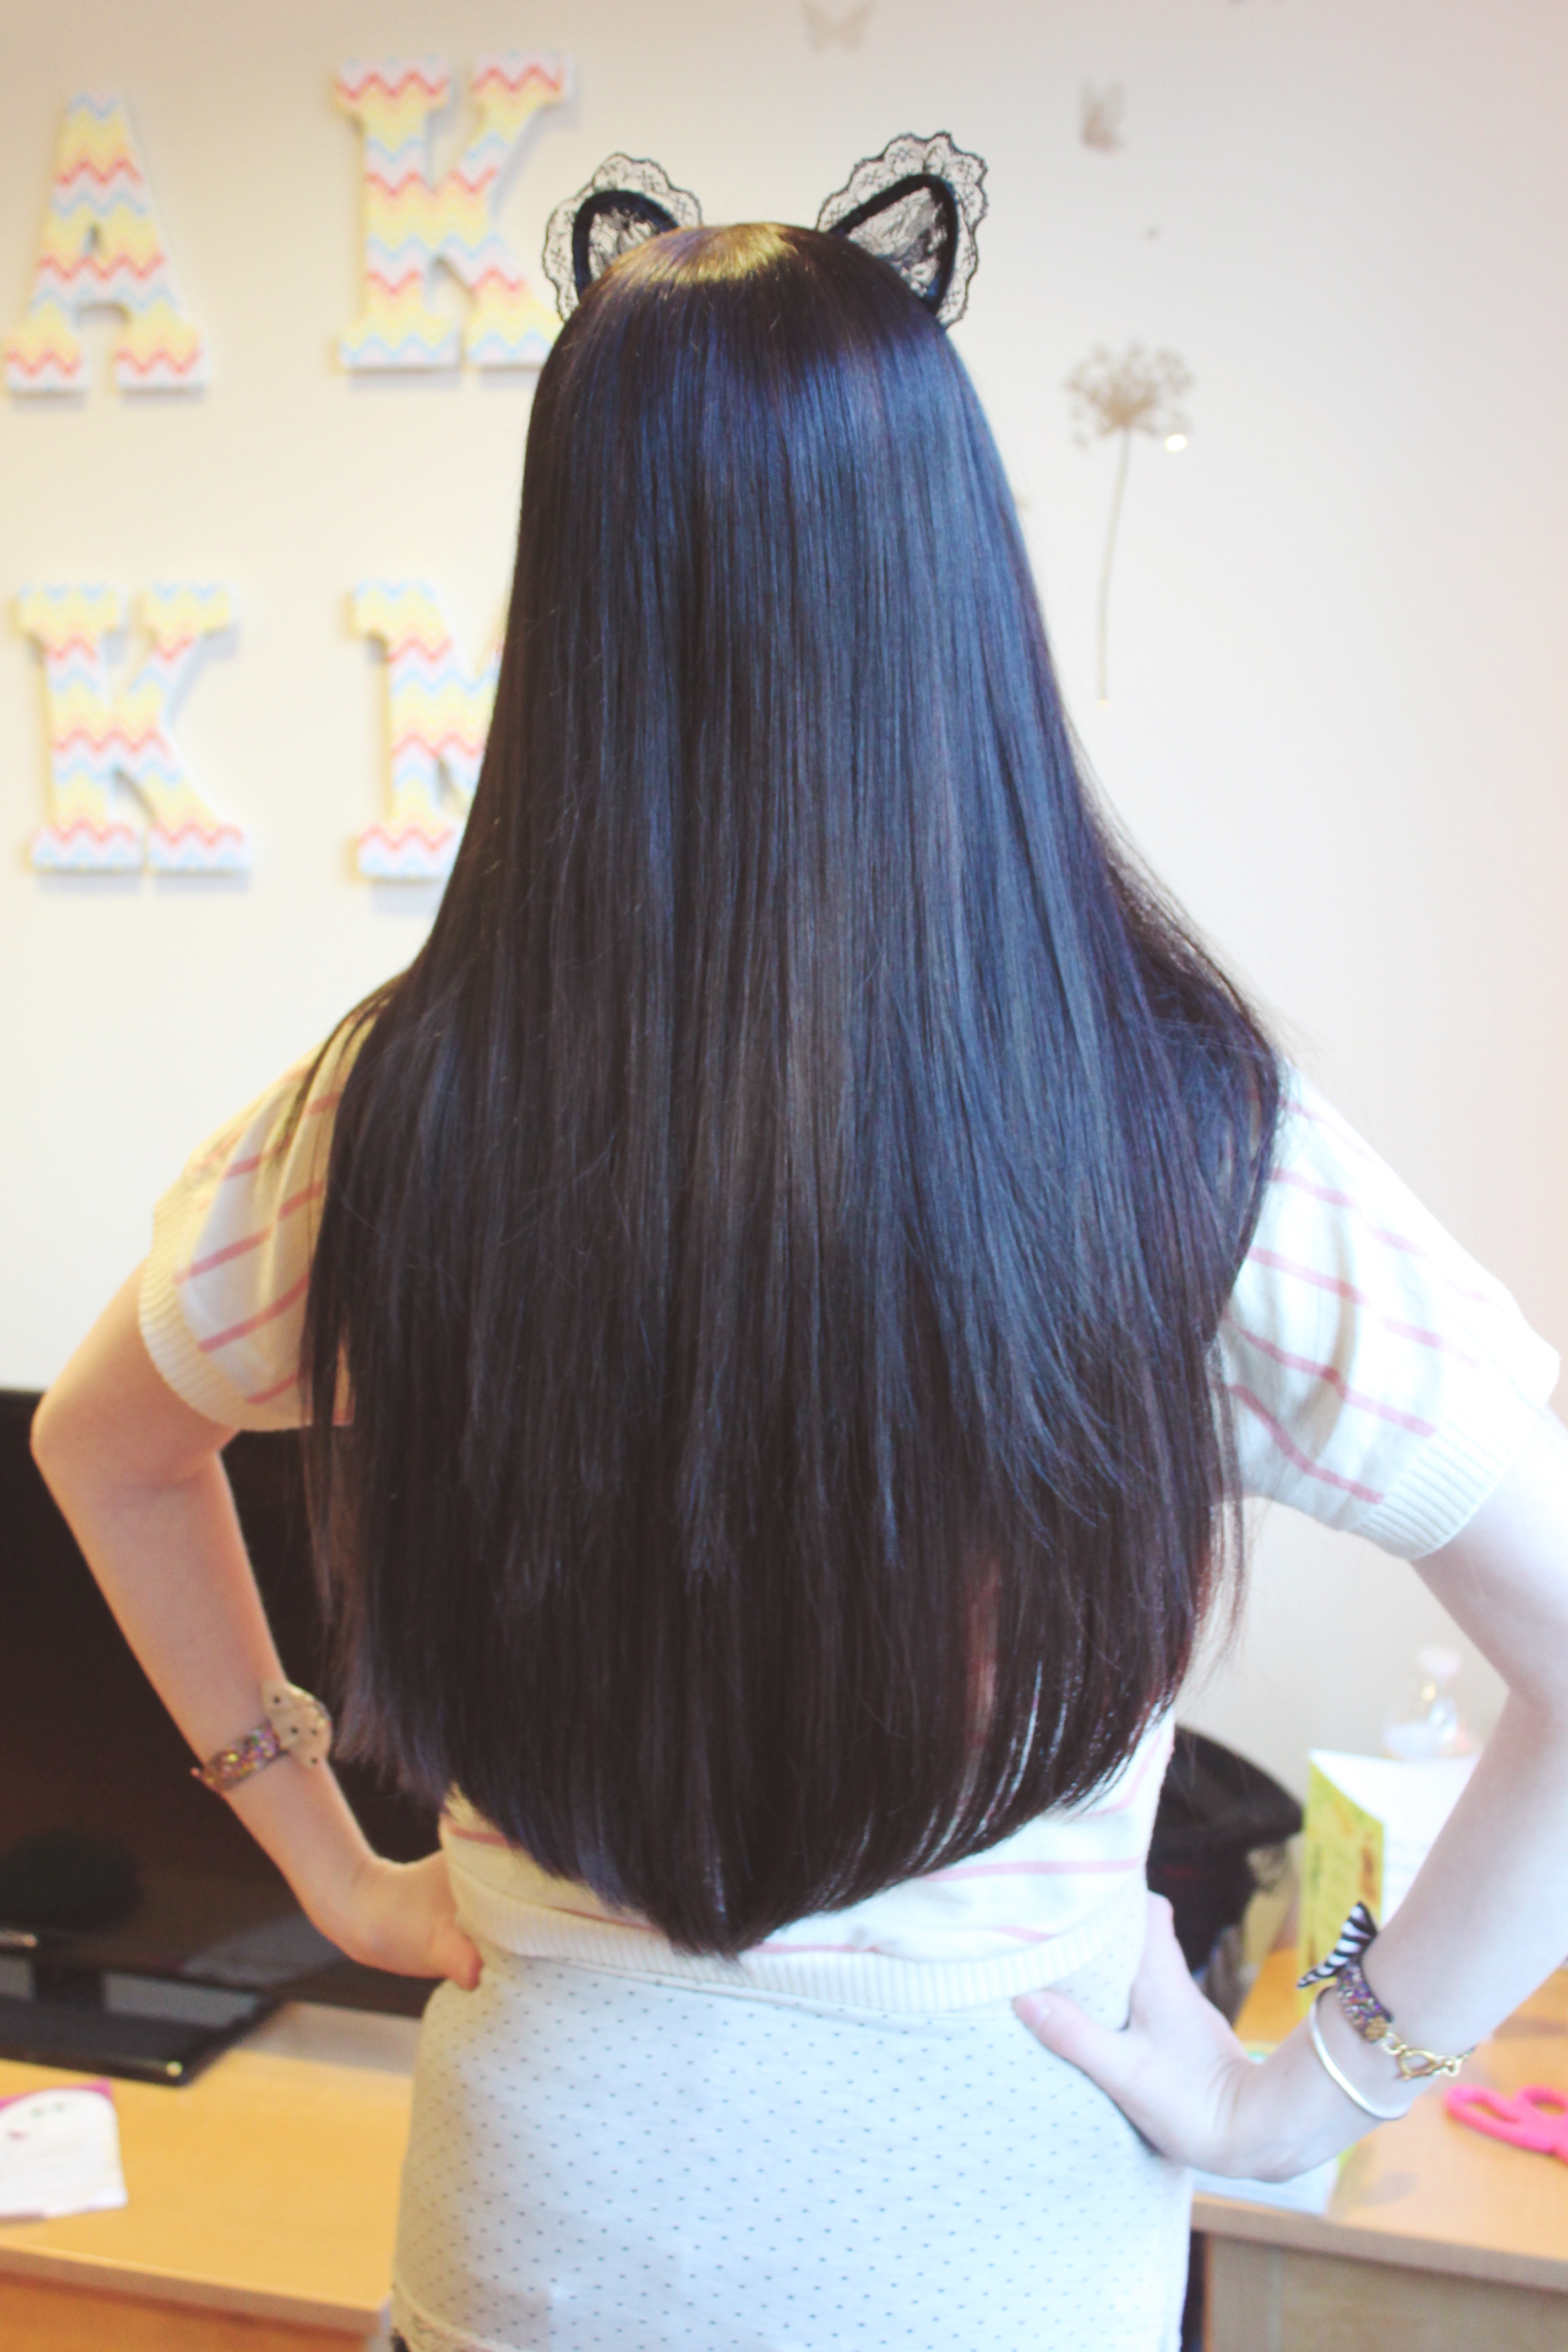 Halo Miracle Wire Hair Extensions Review - Remy Hair Review